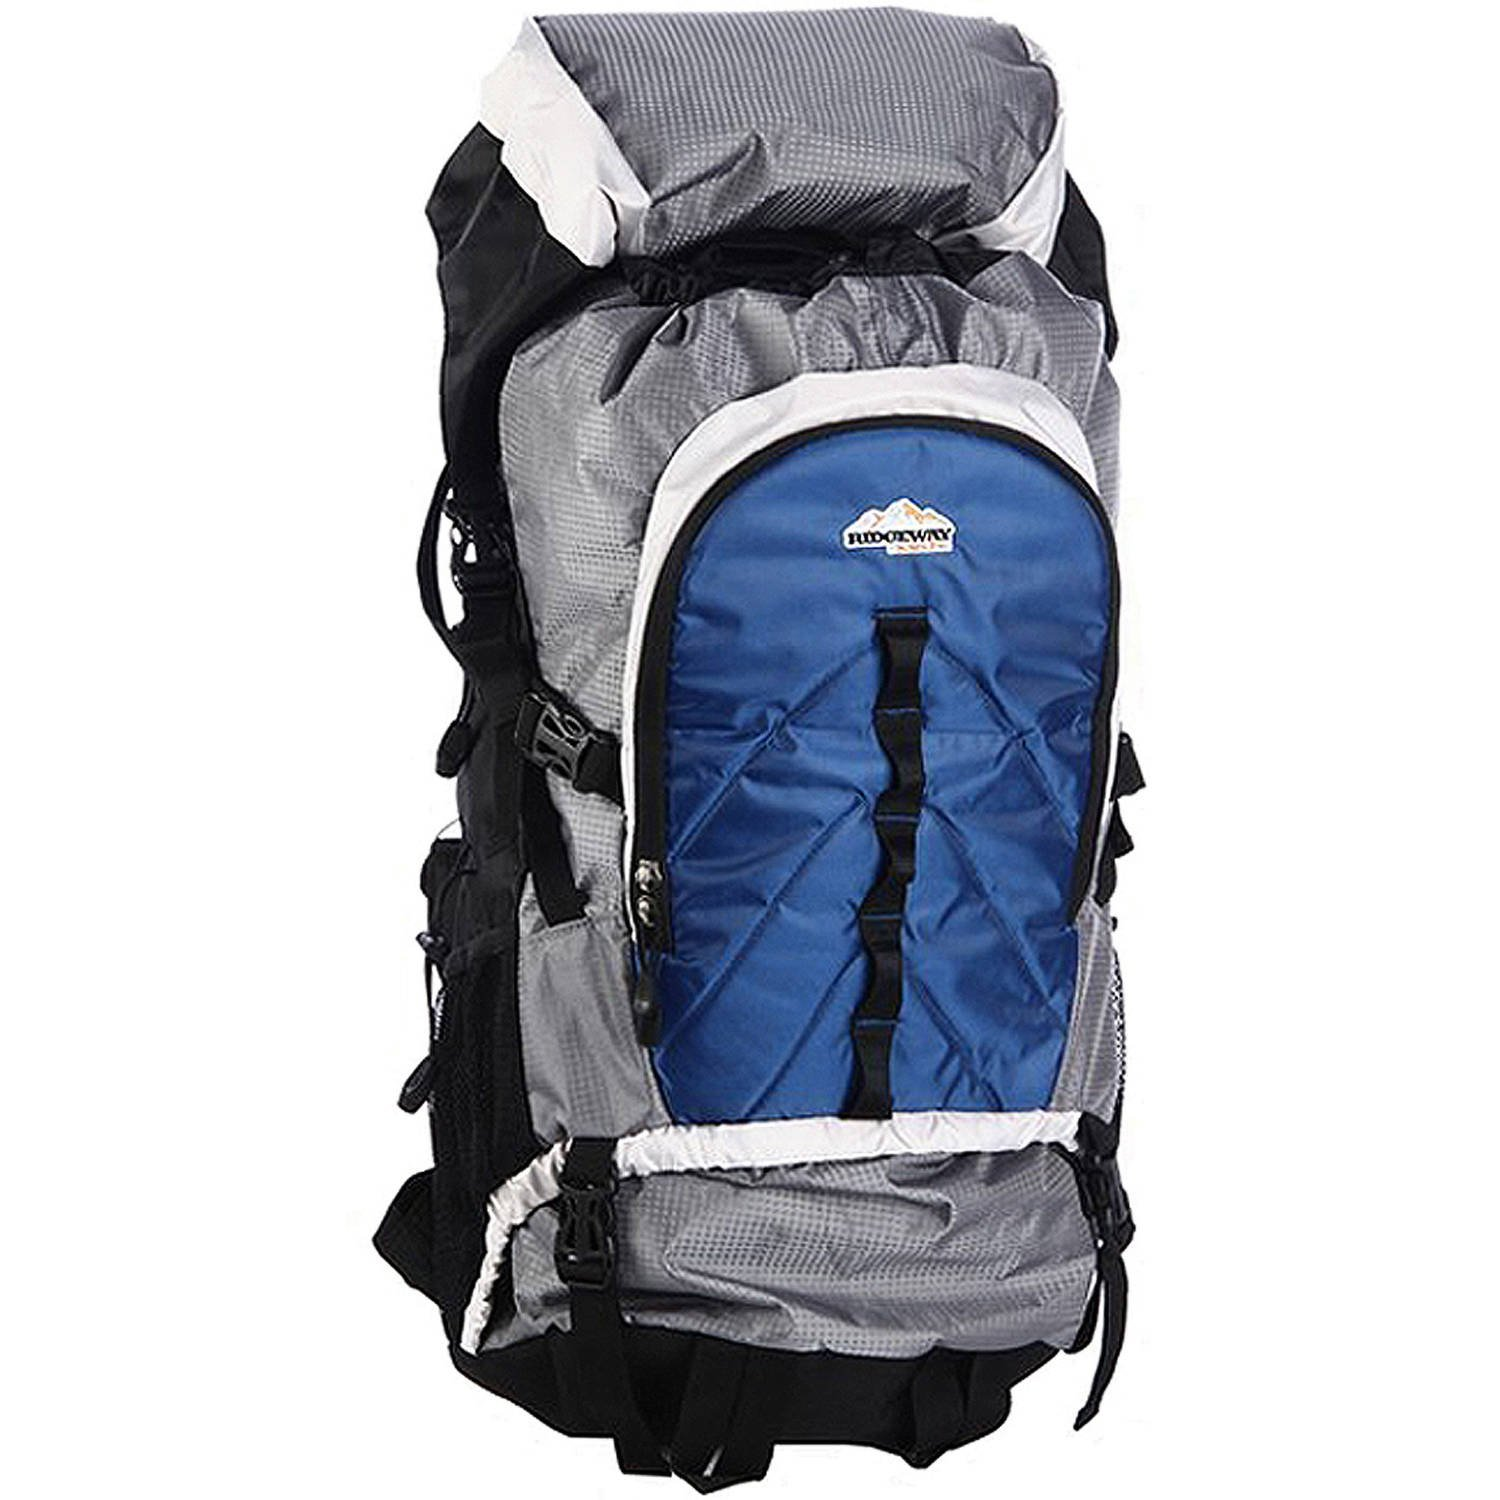 Kelty Ridgeway Internal Frame Backpack 50.8 Liter and Hydration System